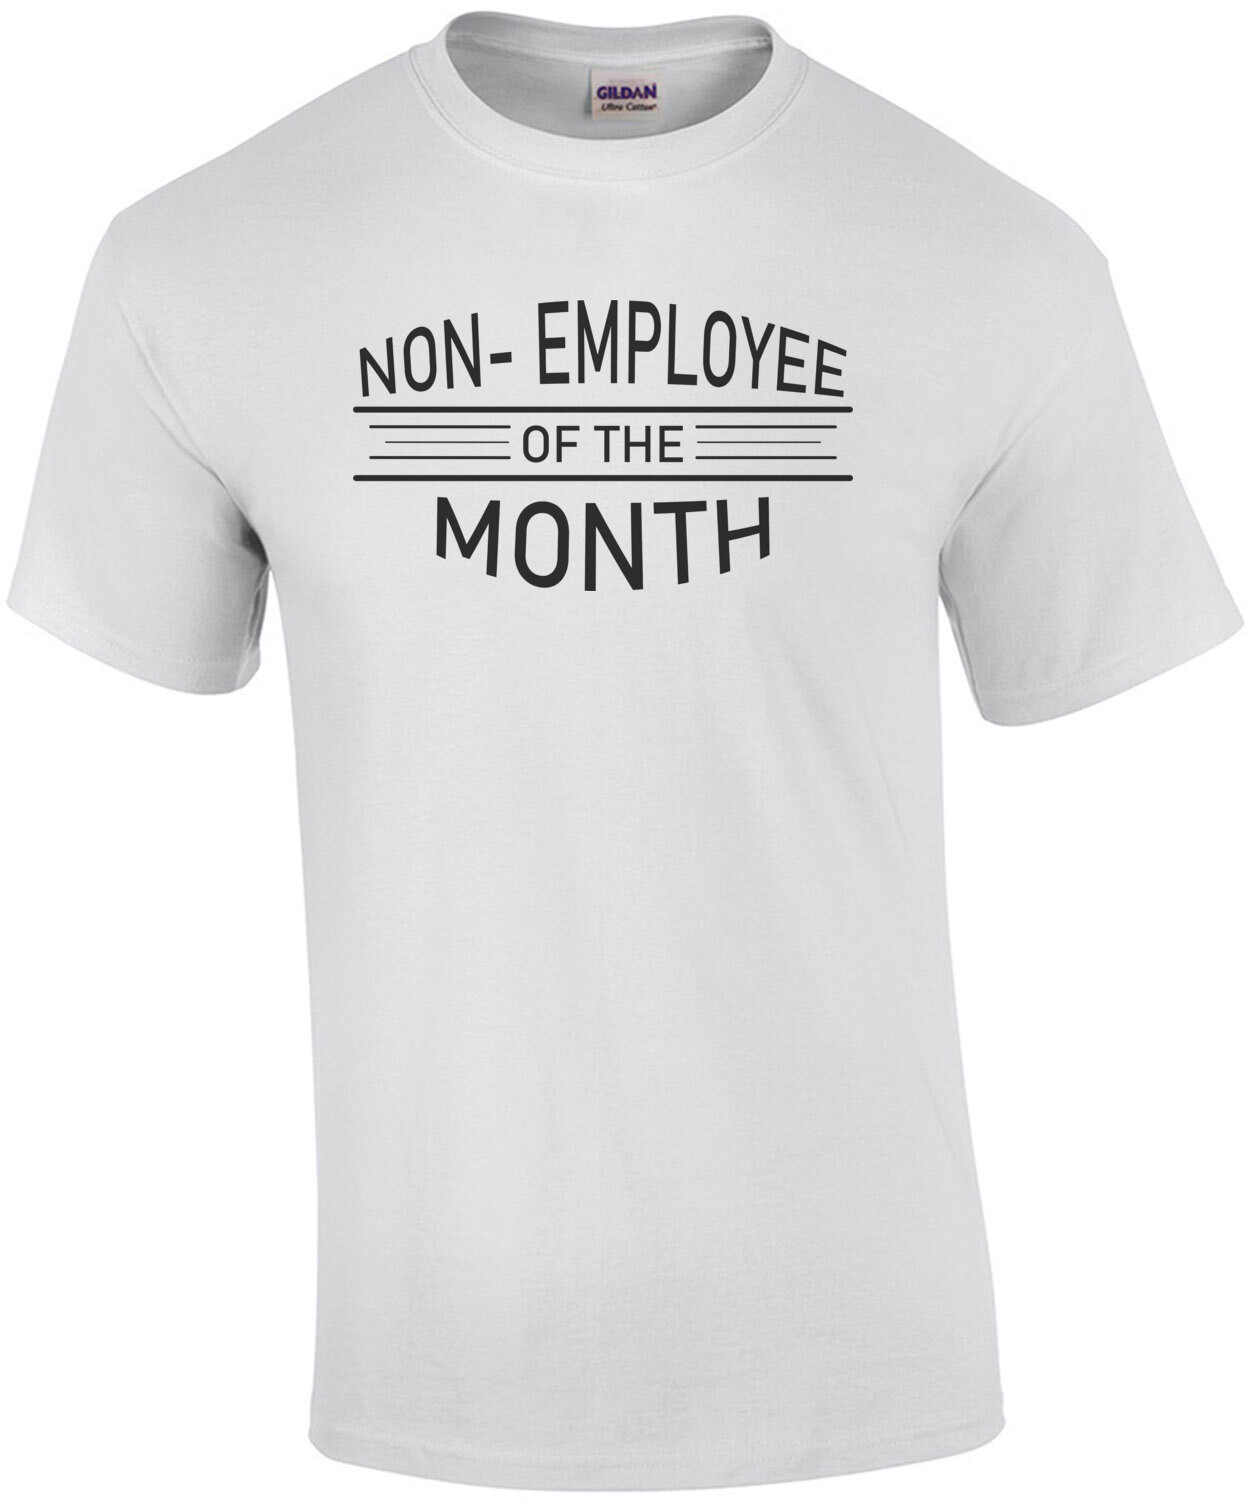 NON-EMPLOYEE OF THE MONTH Shirt